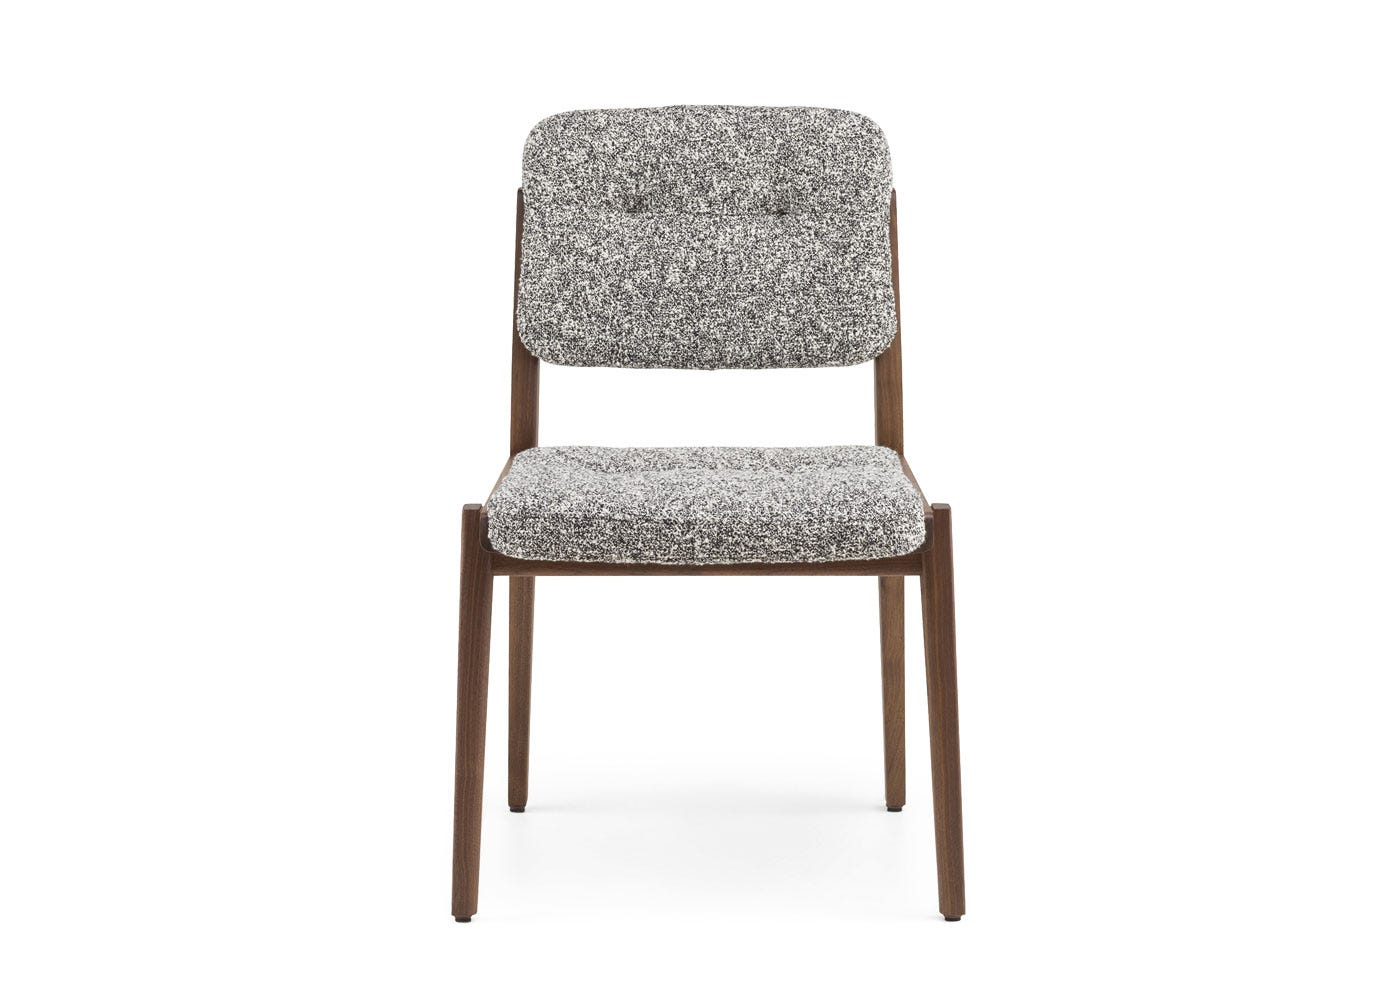 As shown: Capo dining chair danish oiled walnut frame with zero 004 seat pad - Front profile.